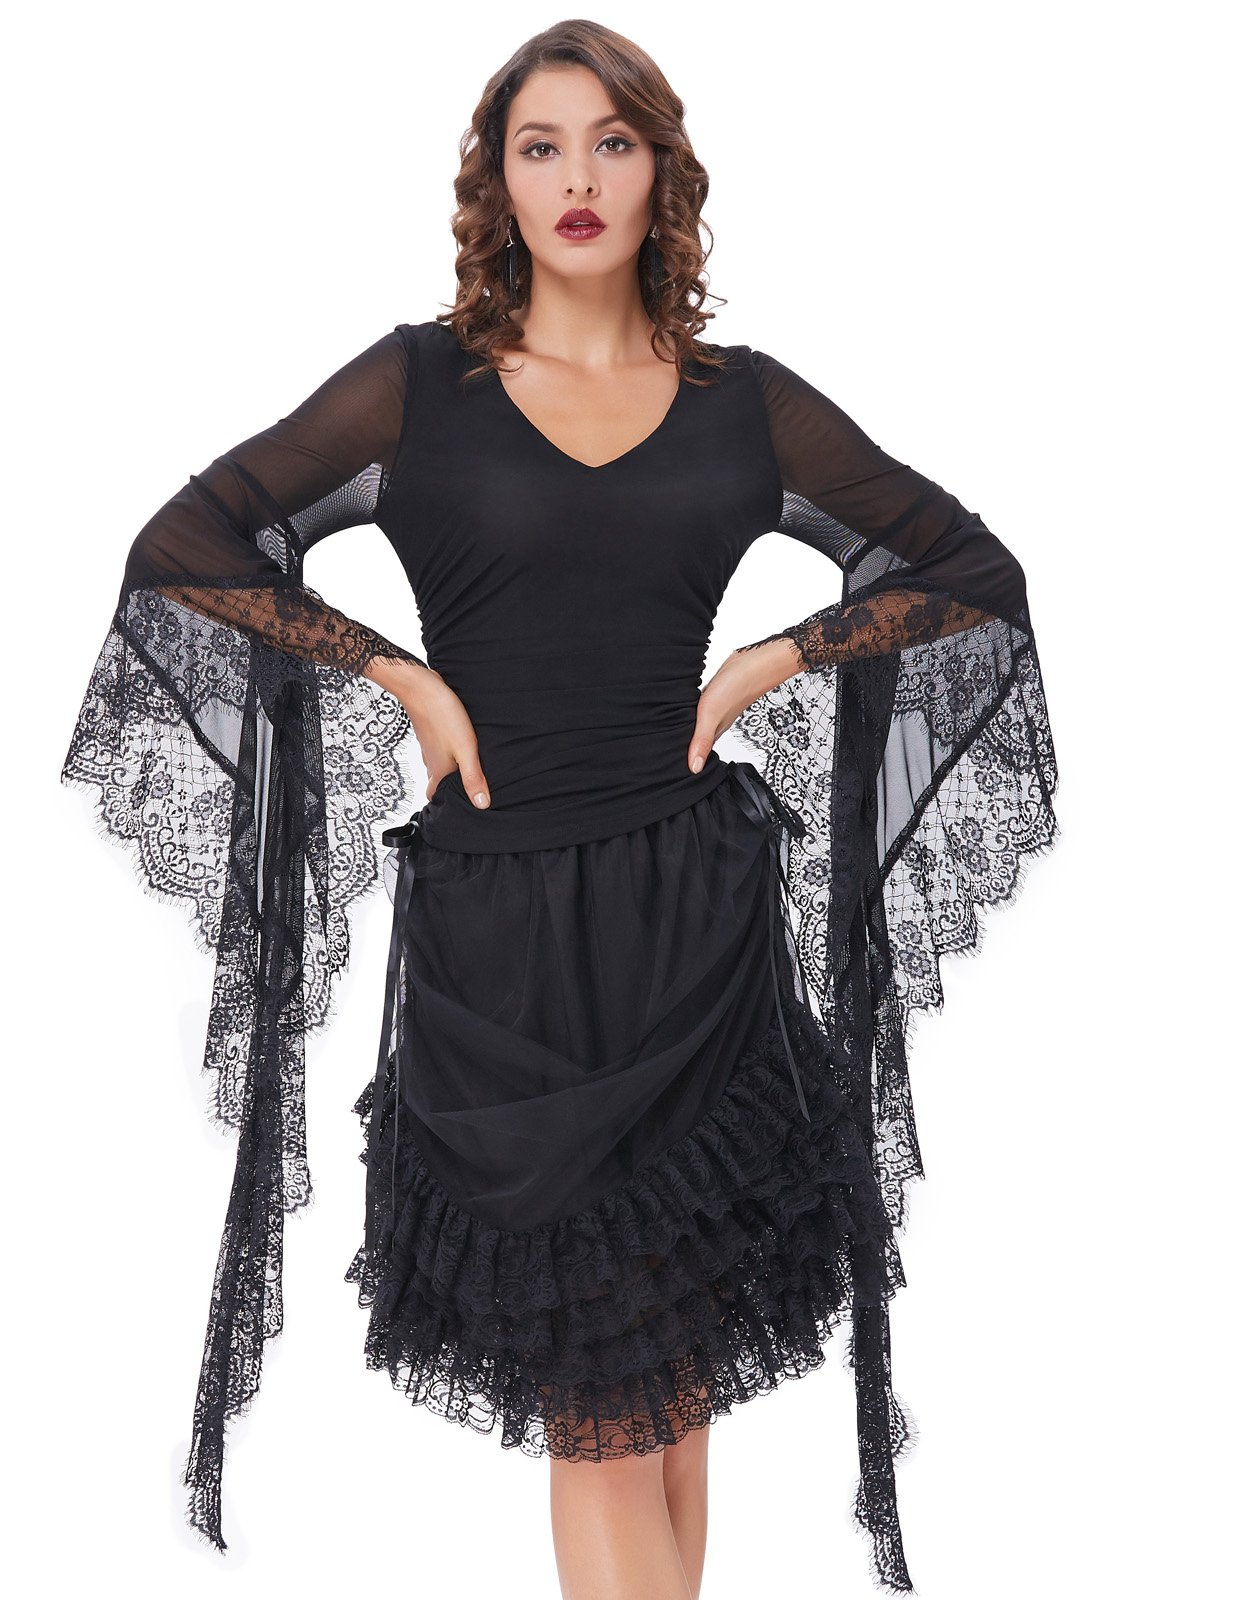 9eaac671beeec Belle Poque Women Steampunk Long Sleeve T Shirts Tops Lace Gothic Tee  Shirts BP000349-1 Black M - 43227-100312   Knits   Tees   Clothing